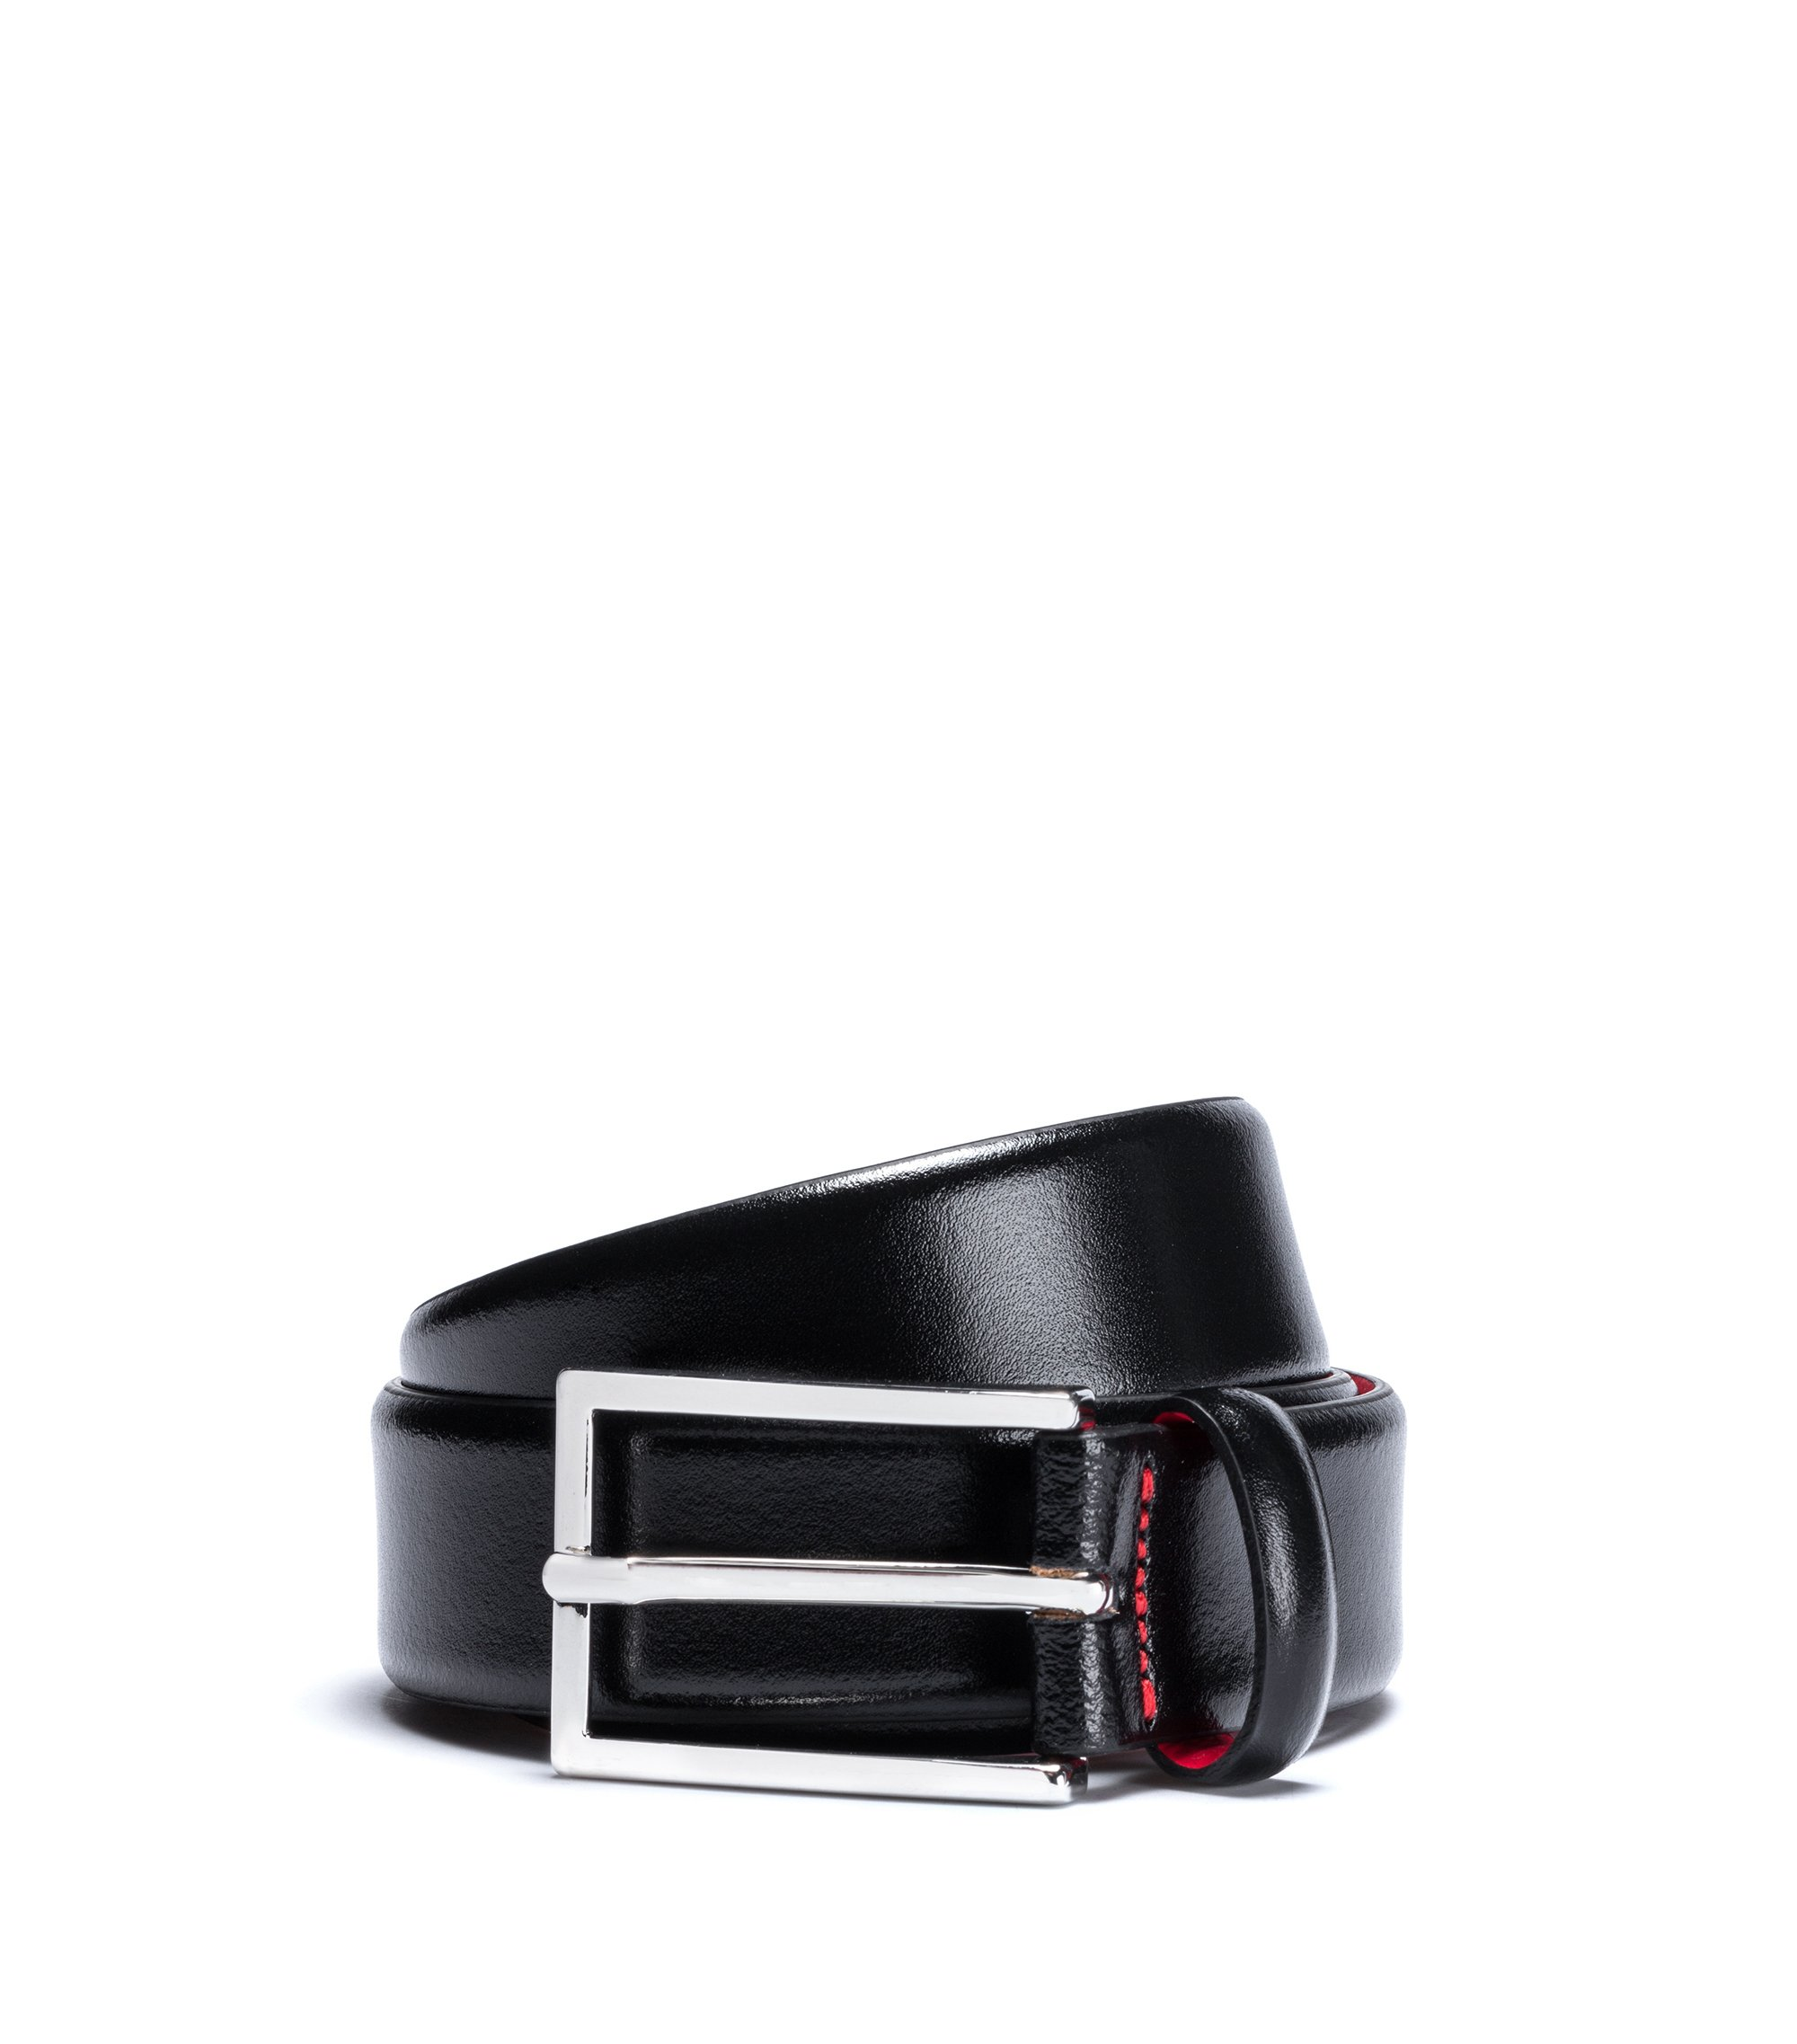 Italian Leather Contrast Belt | Gavrilo BL, Black